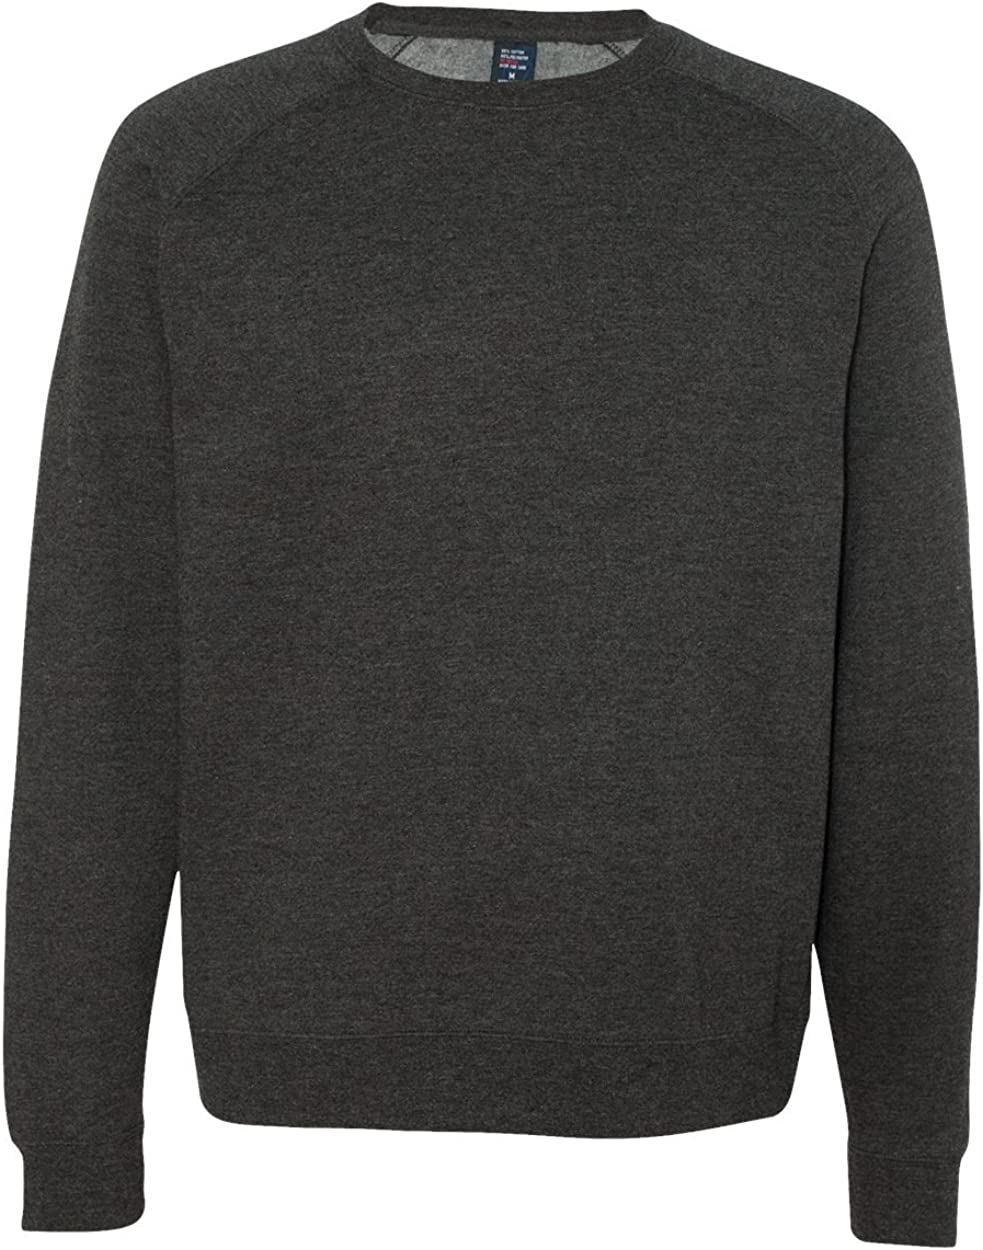 Fitted Raglan Crewneck Sweatshirt IND30RC Independent Trading Co